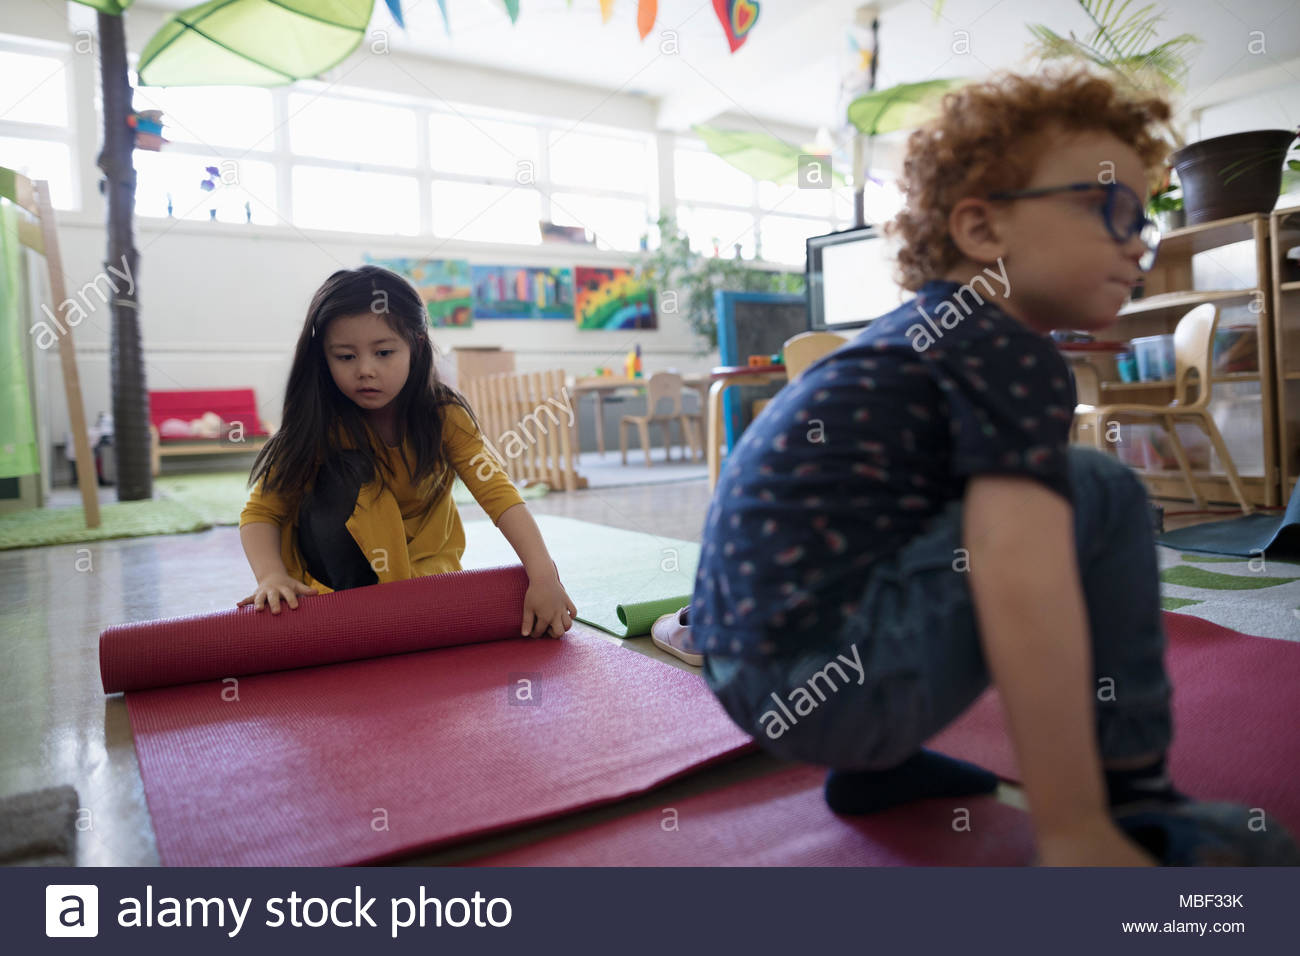 Preschool students rolling up yoga mats in classroom - Stock Image